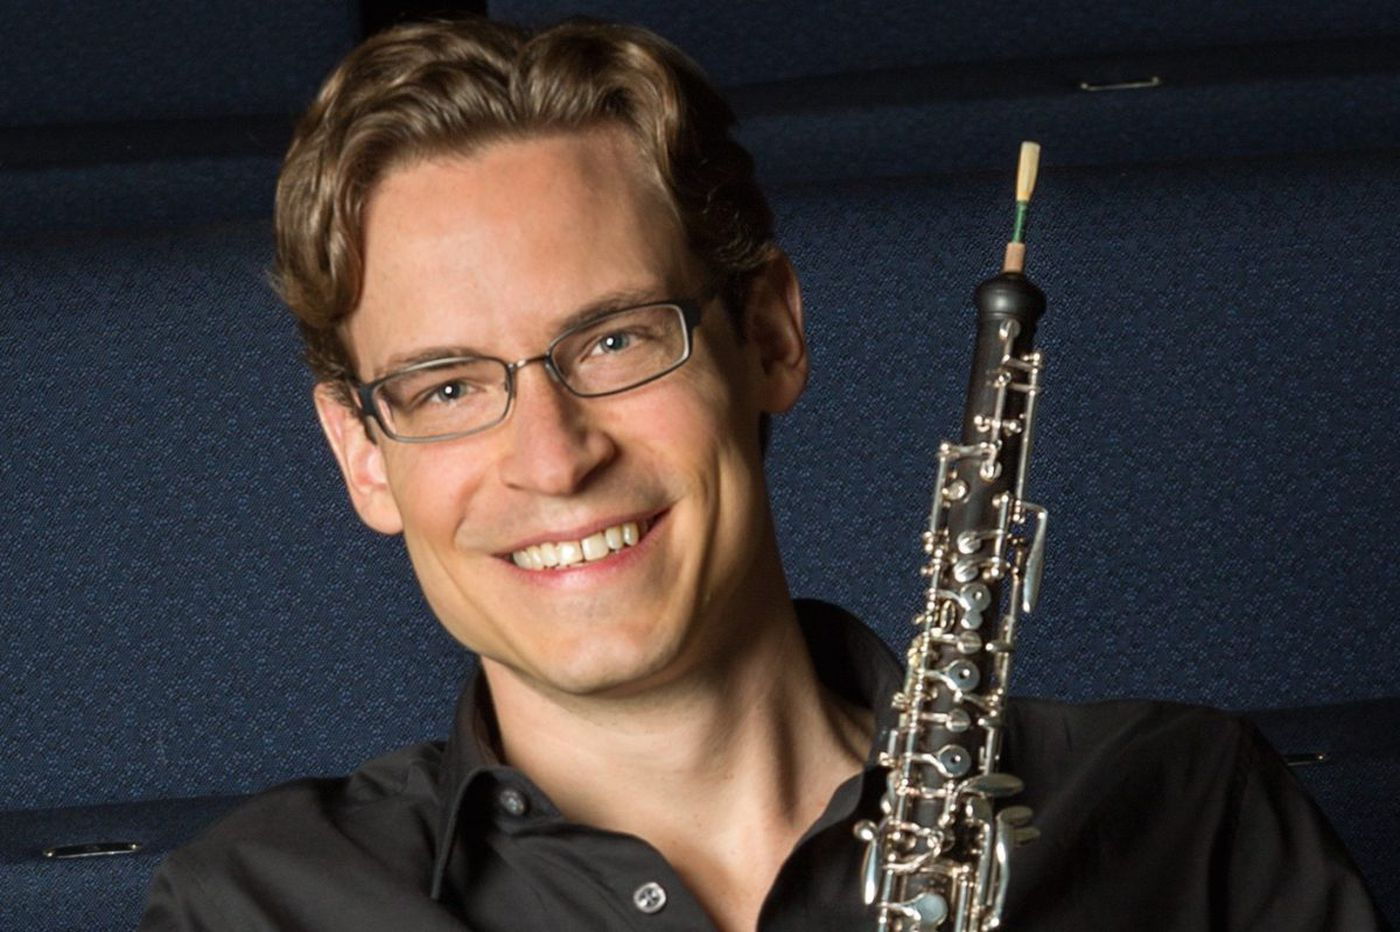 A new principal oboist for the Philadelphia Orchestra? Nathan Hughes emerges as sole finalist